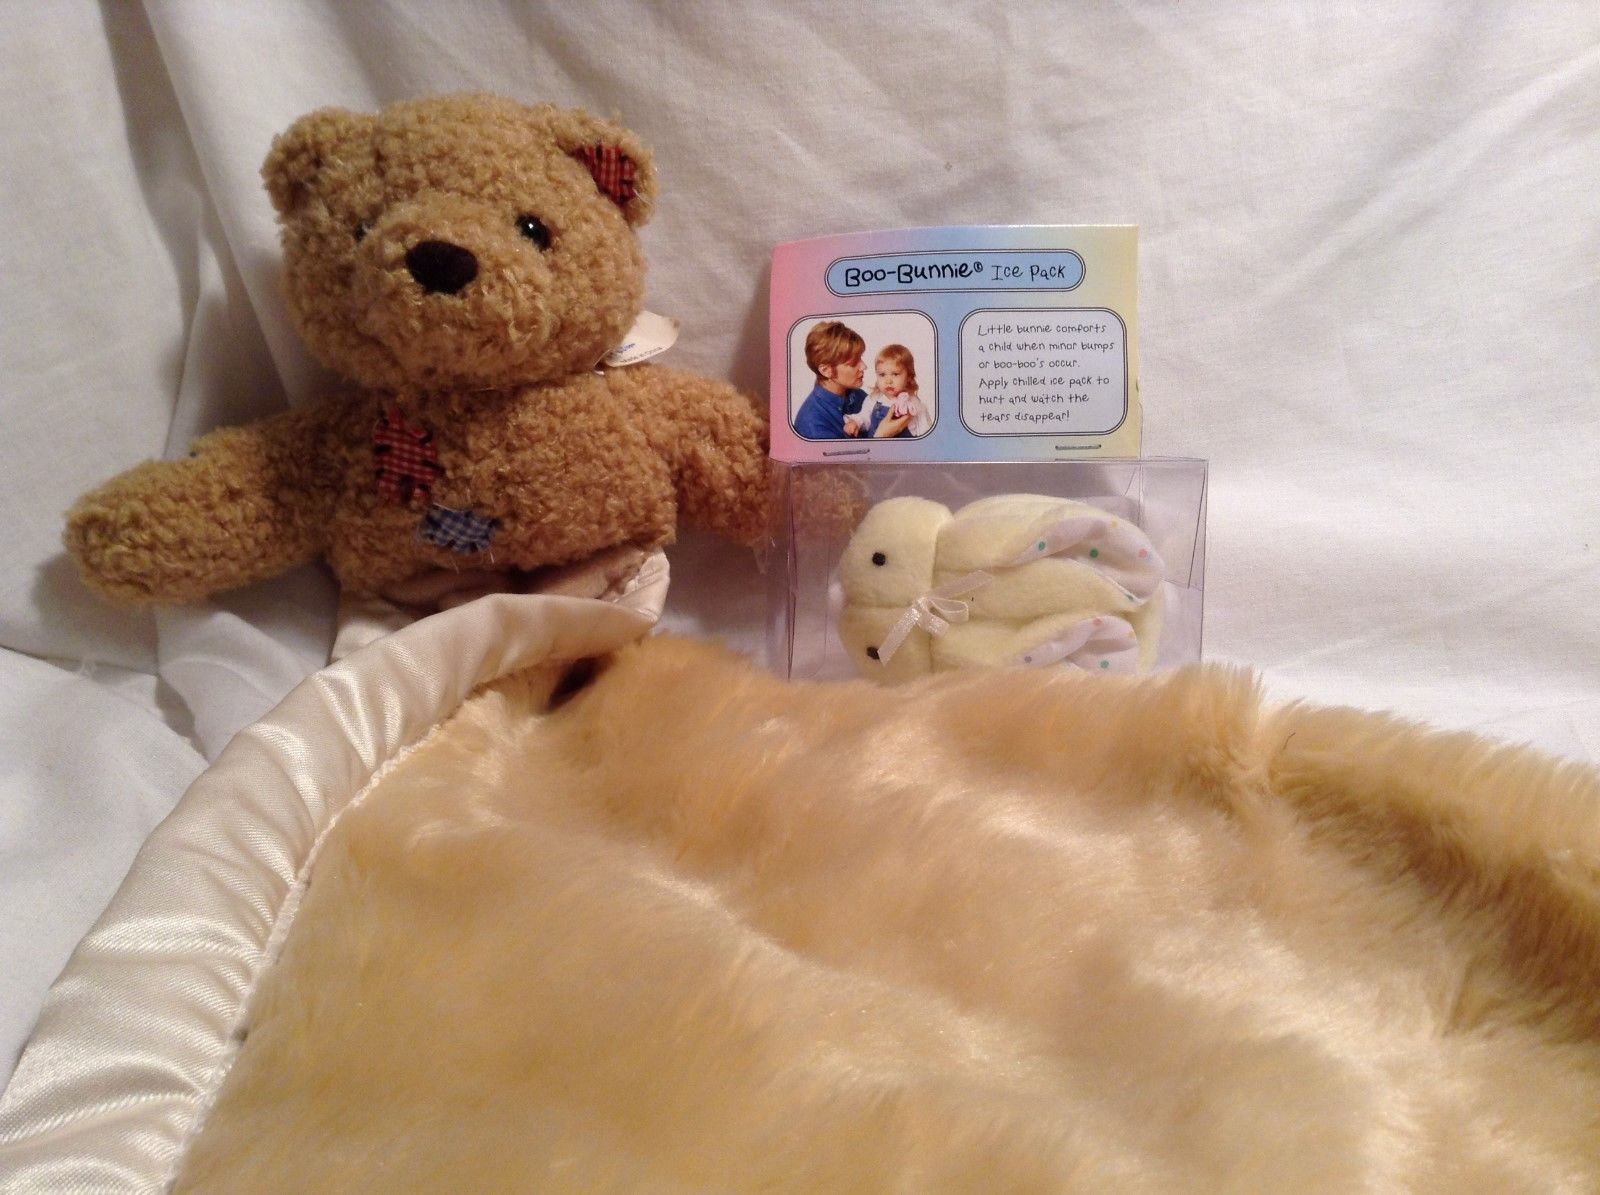 NEW Stephan Baby Two Pc Blanket and Boo-Bunnie Ice Pk Set